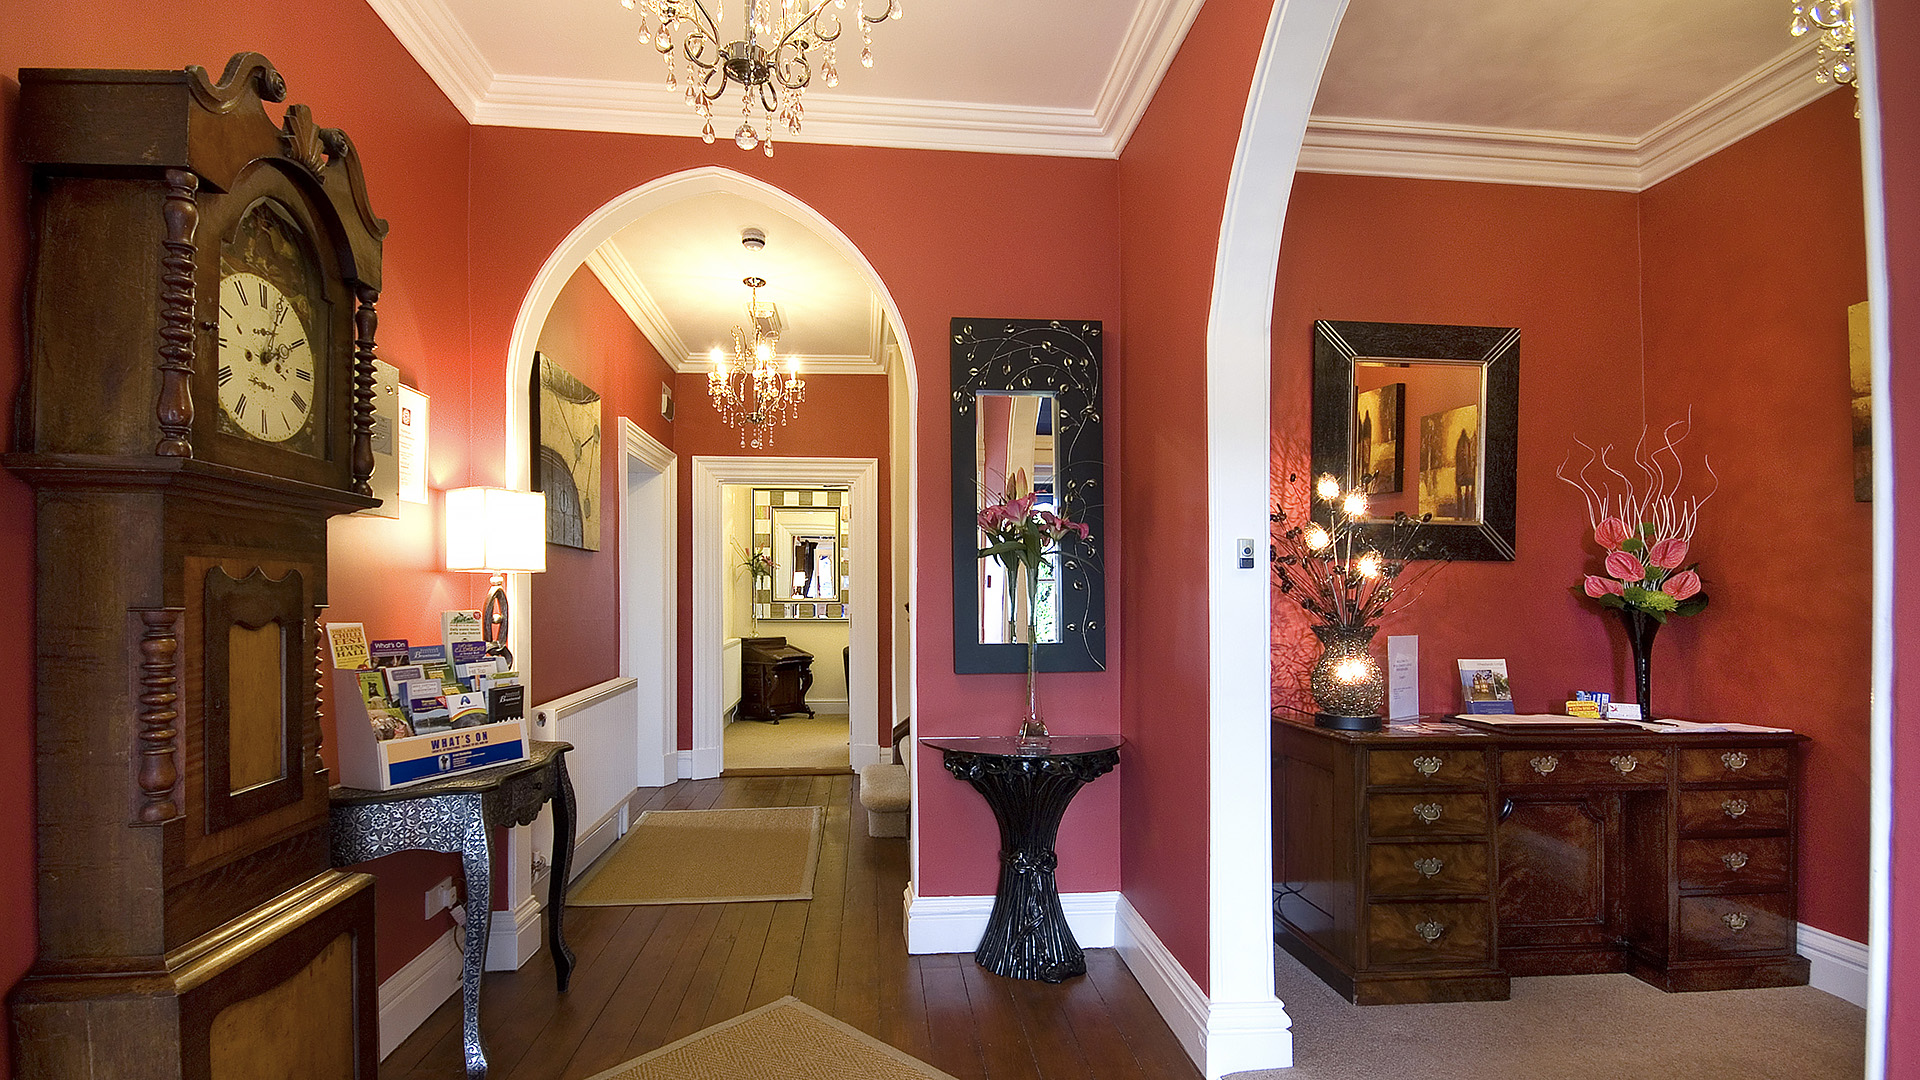 Wheatlands Hotel Communal corridor decor with red / pink and white colour scheme